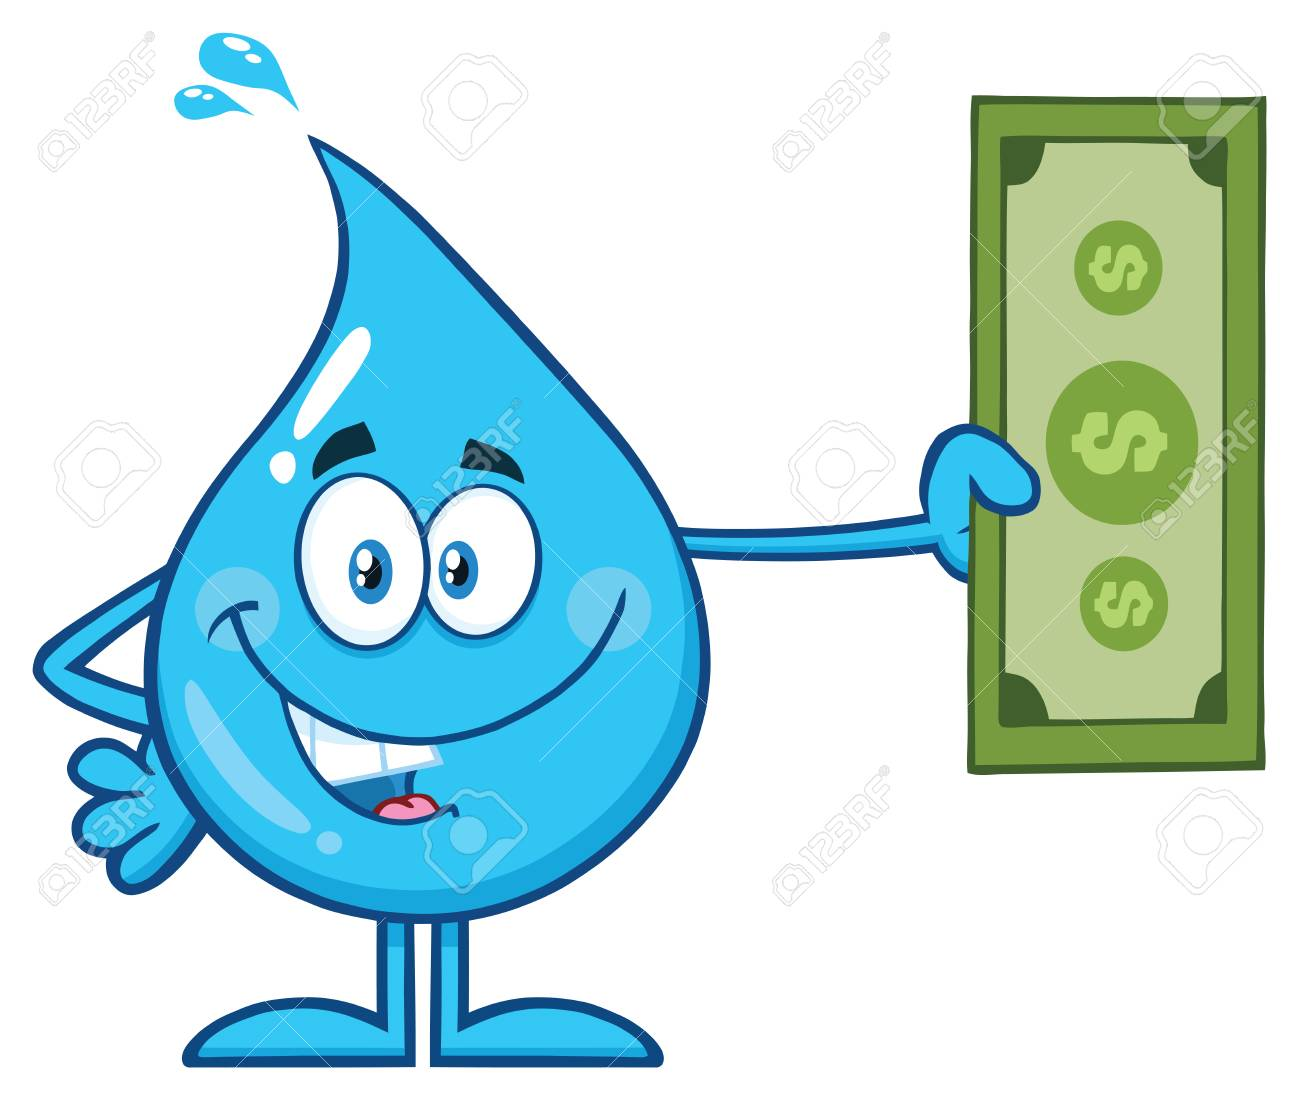 Blue Water Drop Cartoon Mascot Character Holding A Dollar Bill Vector Il Ration Isolated On White